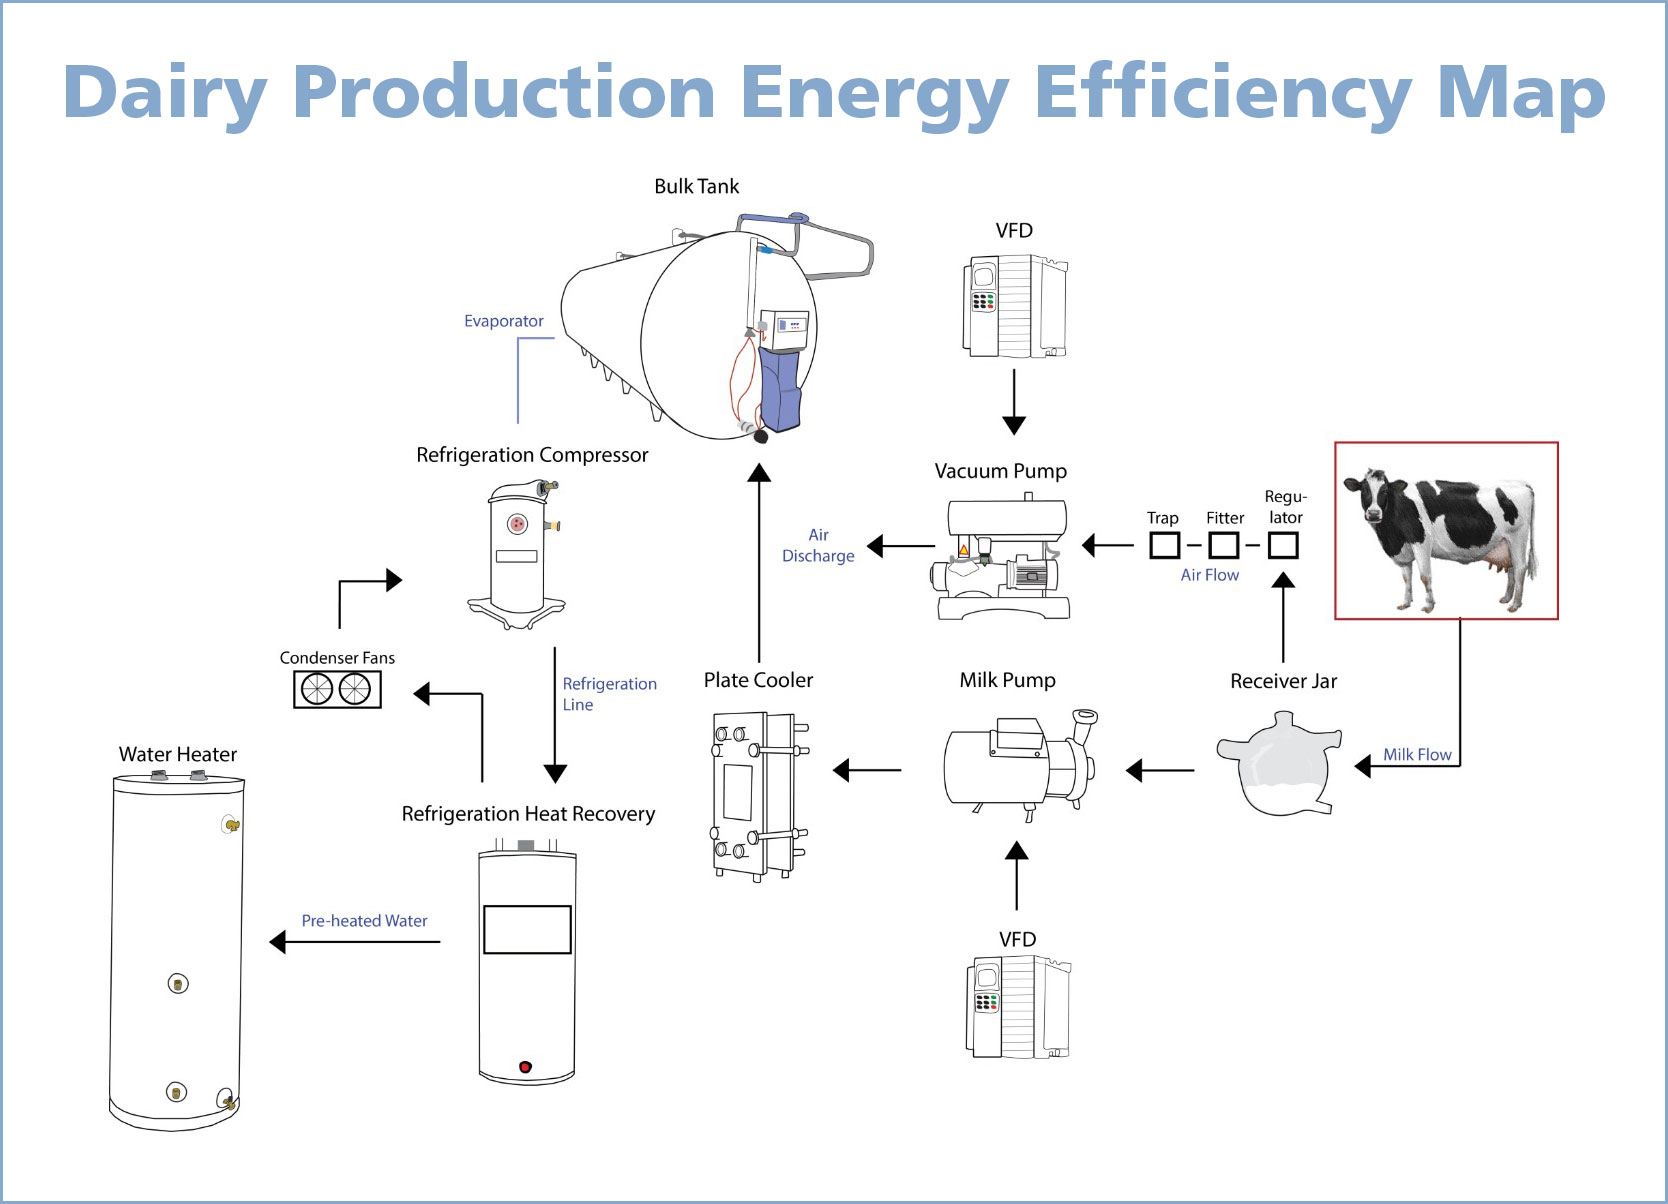 energy efficiency of a pro process Energy assessment process manual pue estimator dc pro energy assessment worksheet am estimator am tool power chain tool system-level assessment tools data center profiling tools report findings & make recommendations master list of efficiency actions energy assessment report template data center energy assessment complete.